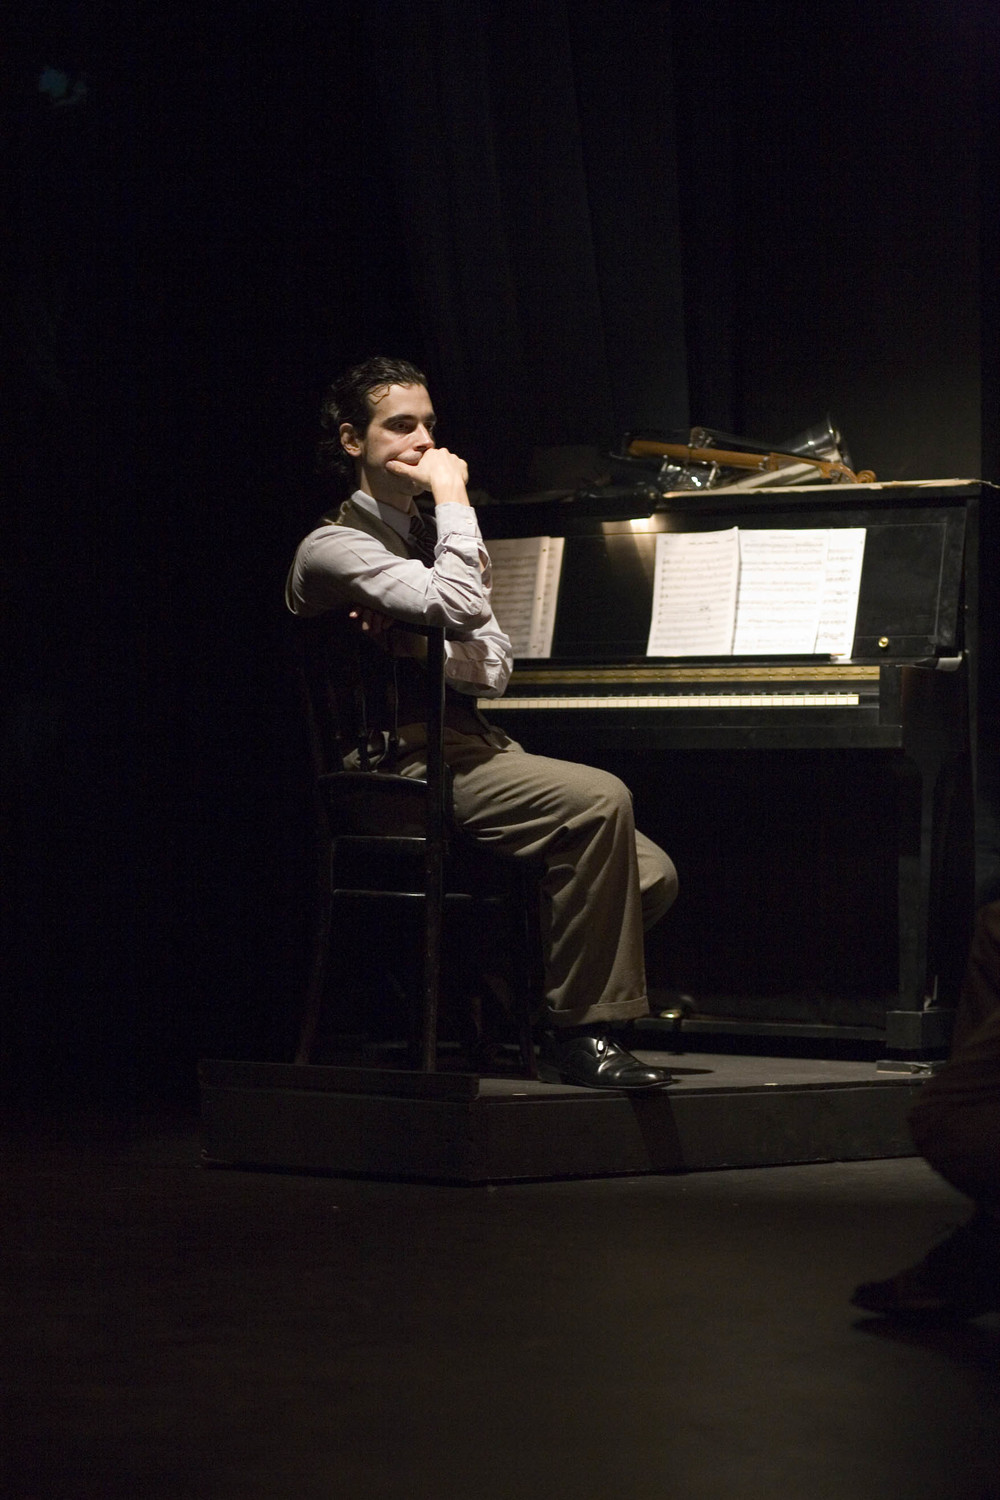 The great Jose Gonzales as Erwin Schulhoff          photo credit: Michelle Smith-Lewis Courtesy of Cornish College of the Arts